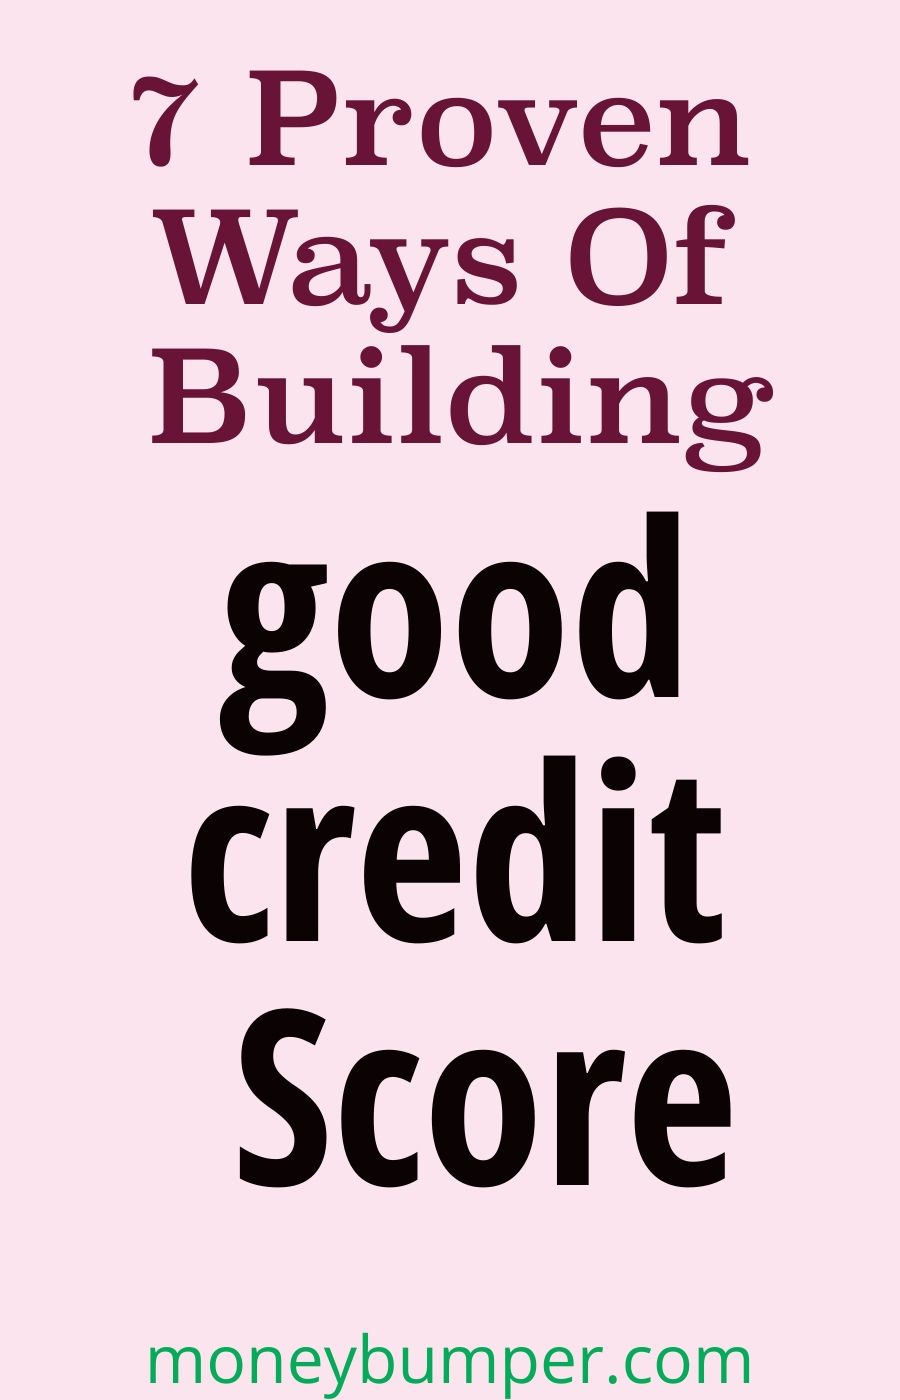 5 Proven Ways To Build Credit Without A Credit Card In 2020 Good